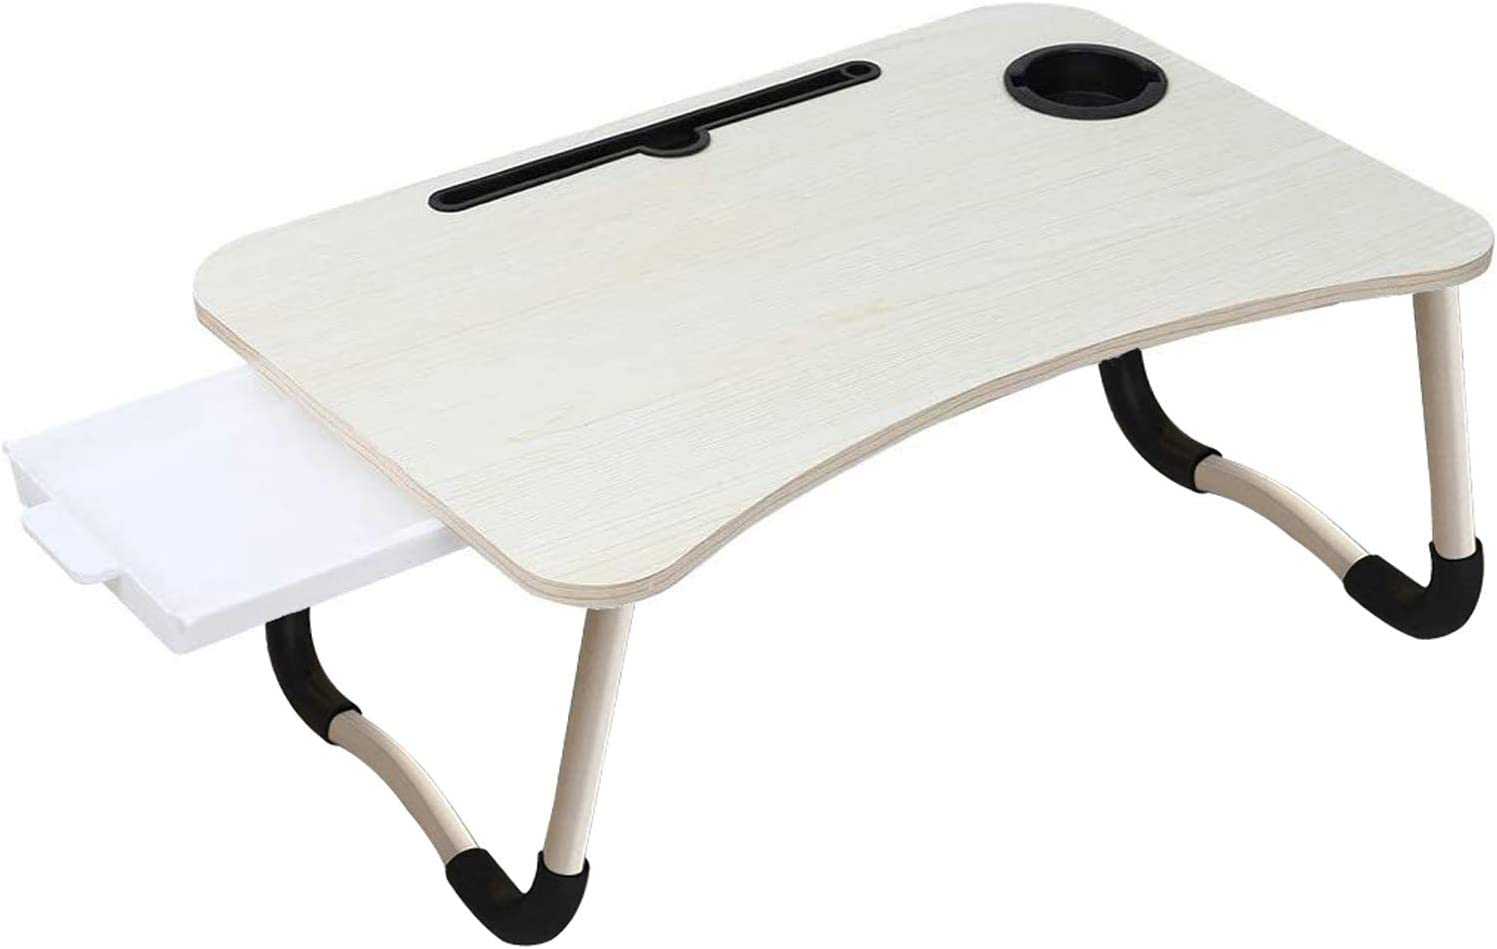 Laptop 67% OFF of fixed price High material Lap Desk Foldable Table Bed Stand Di for